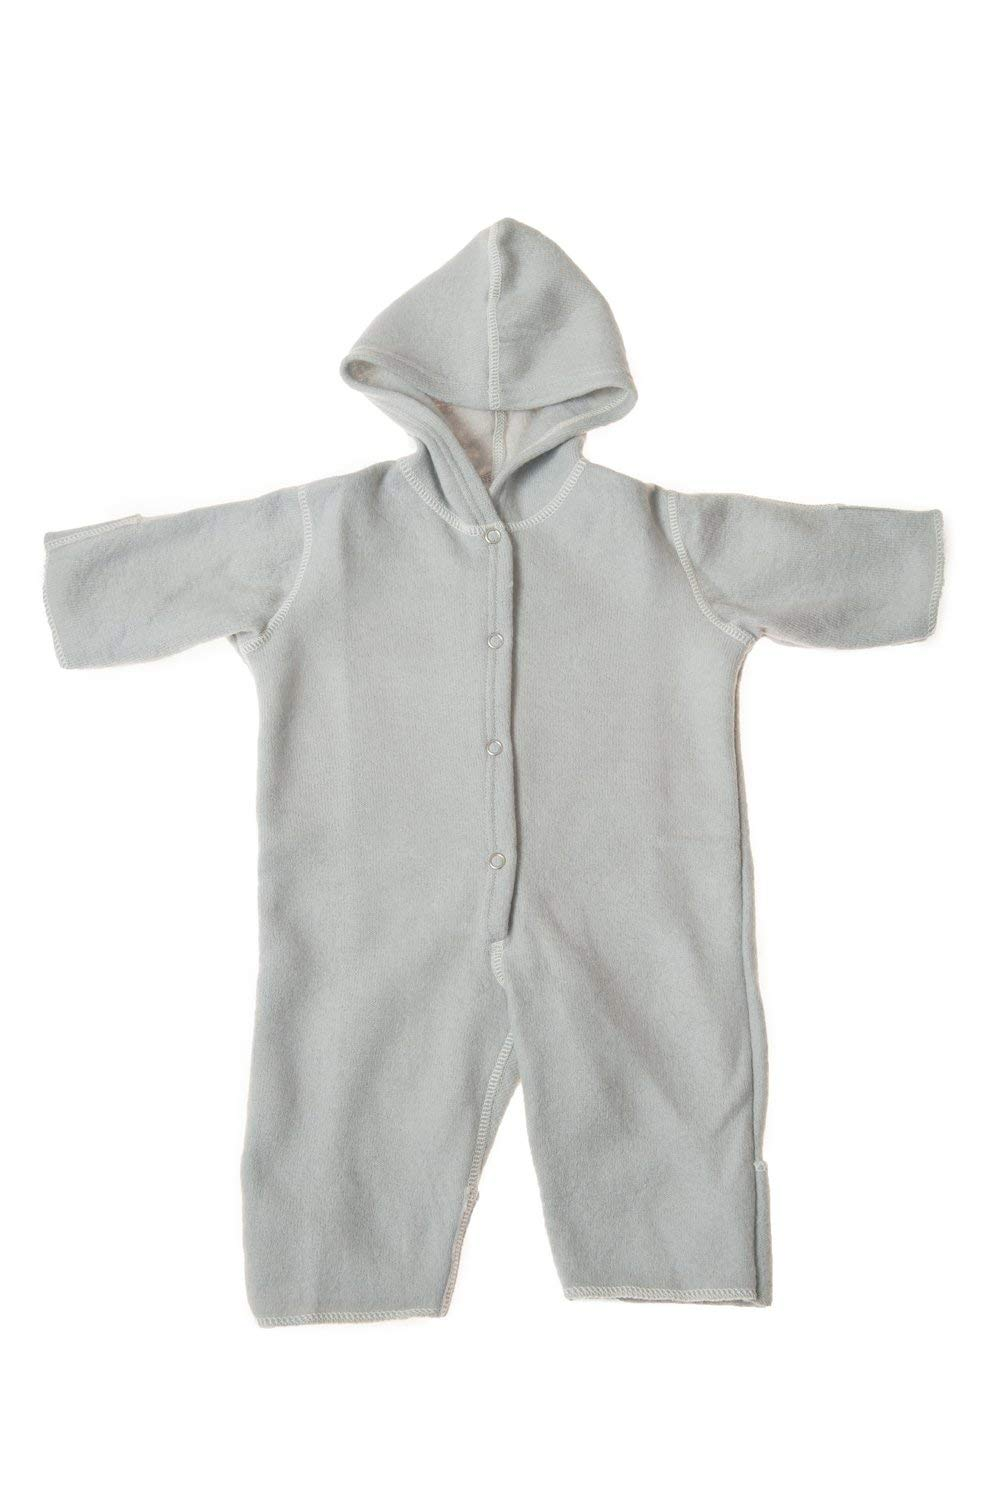 060de590e Buy LANACare Baby Overall with Hood in Organic Merino Wool in Cheap ...